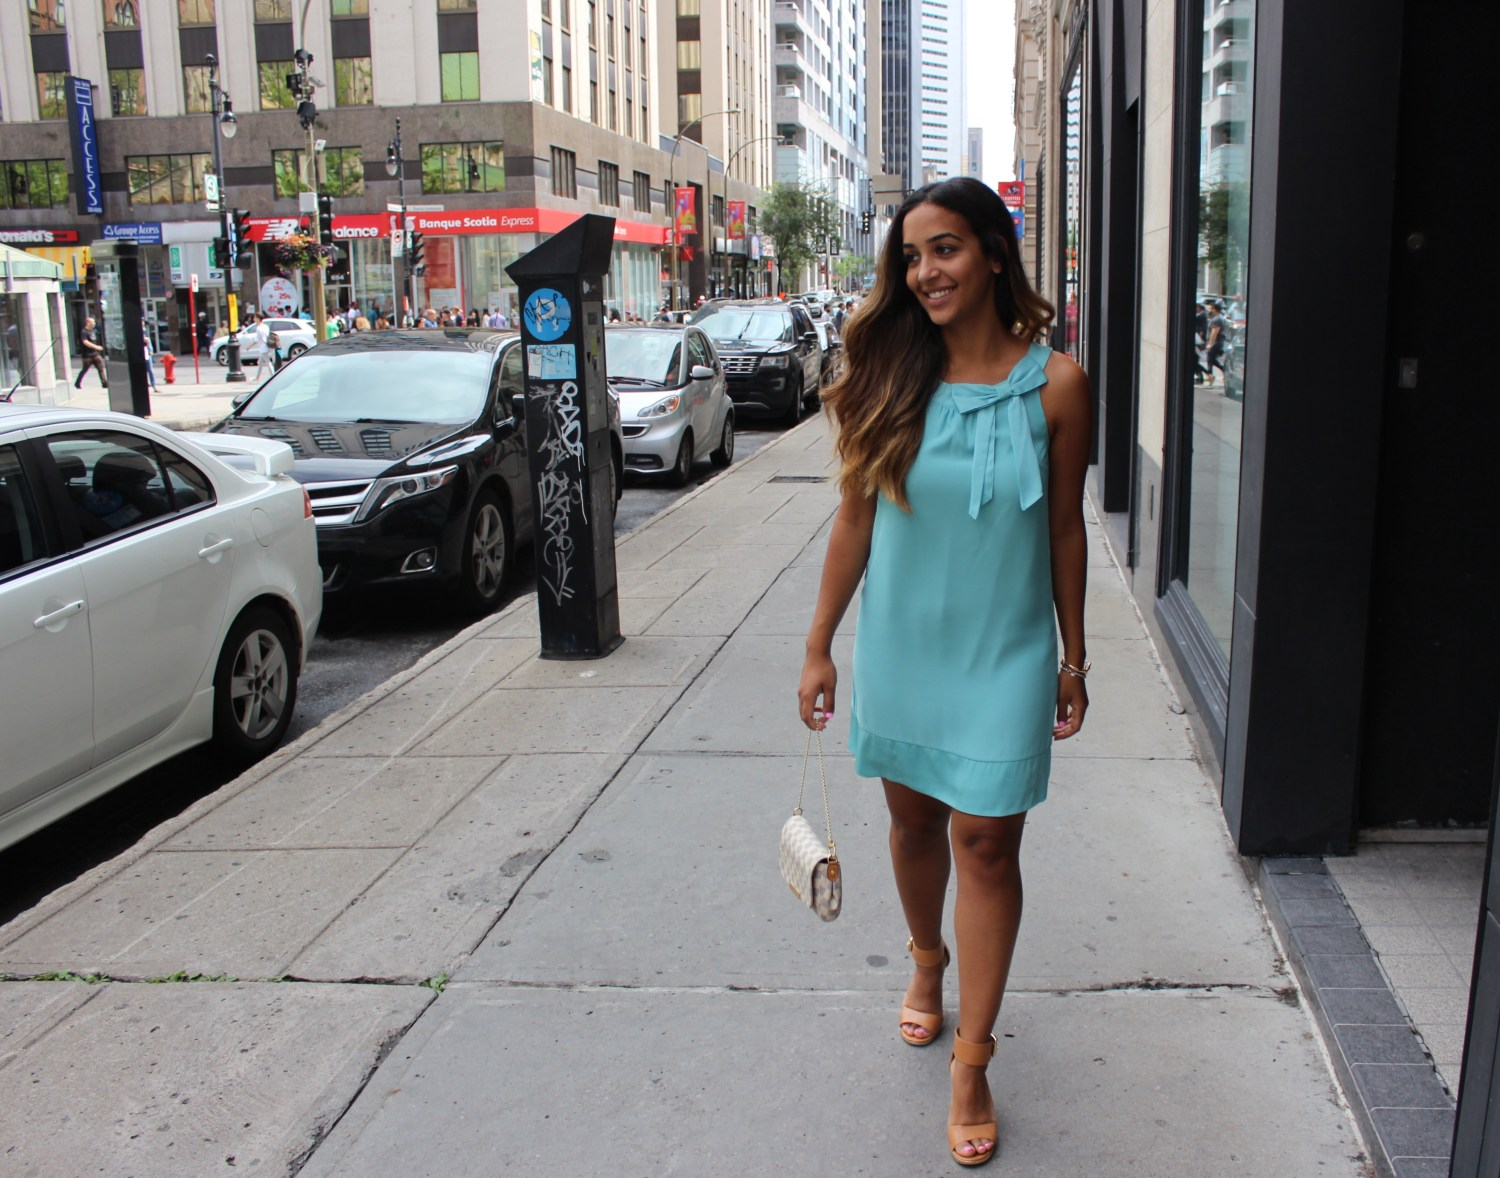 fashion in the city of Montreal